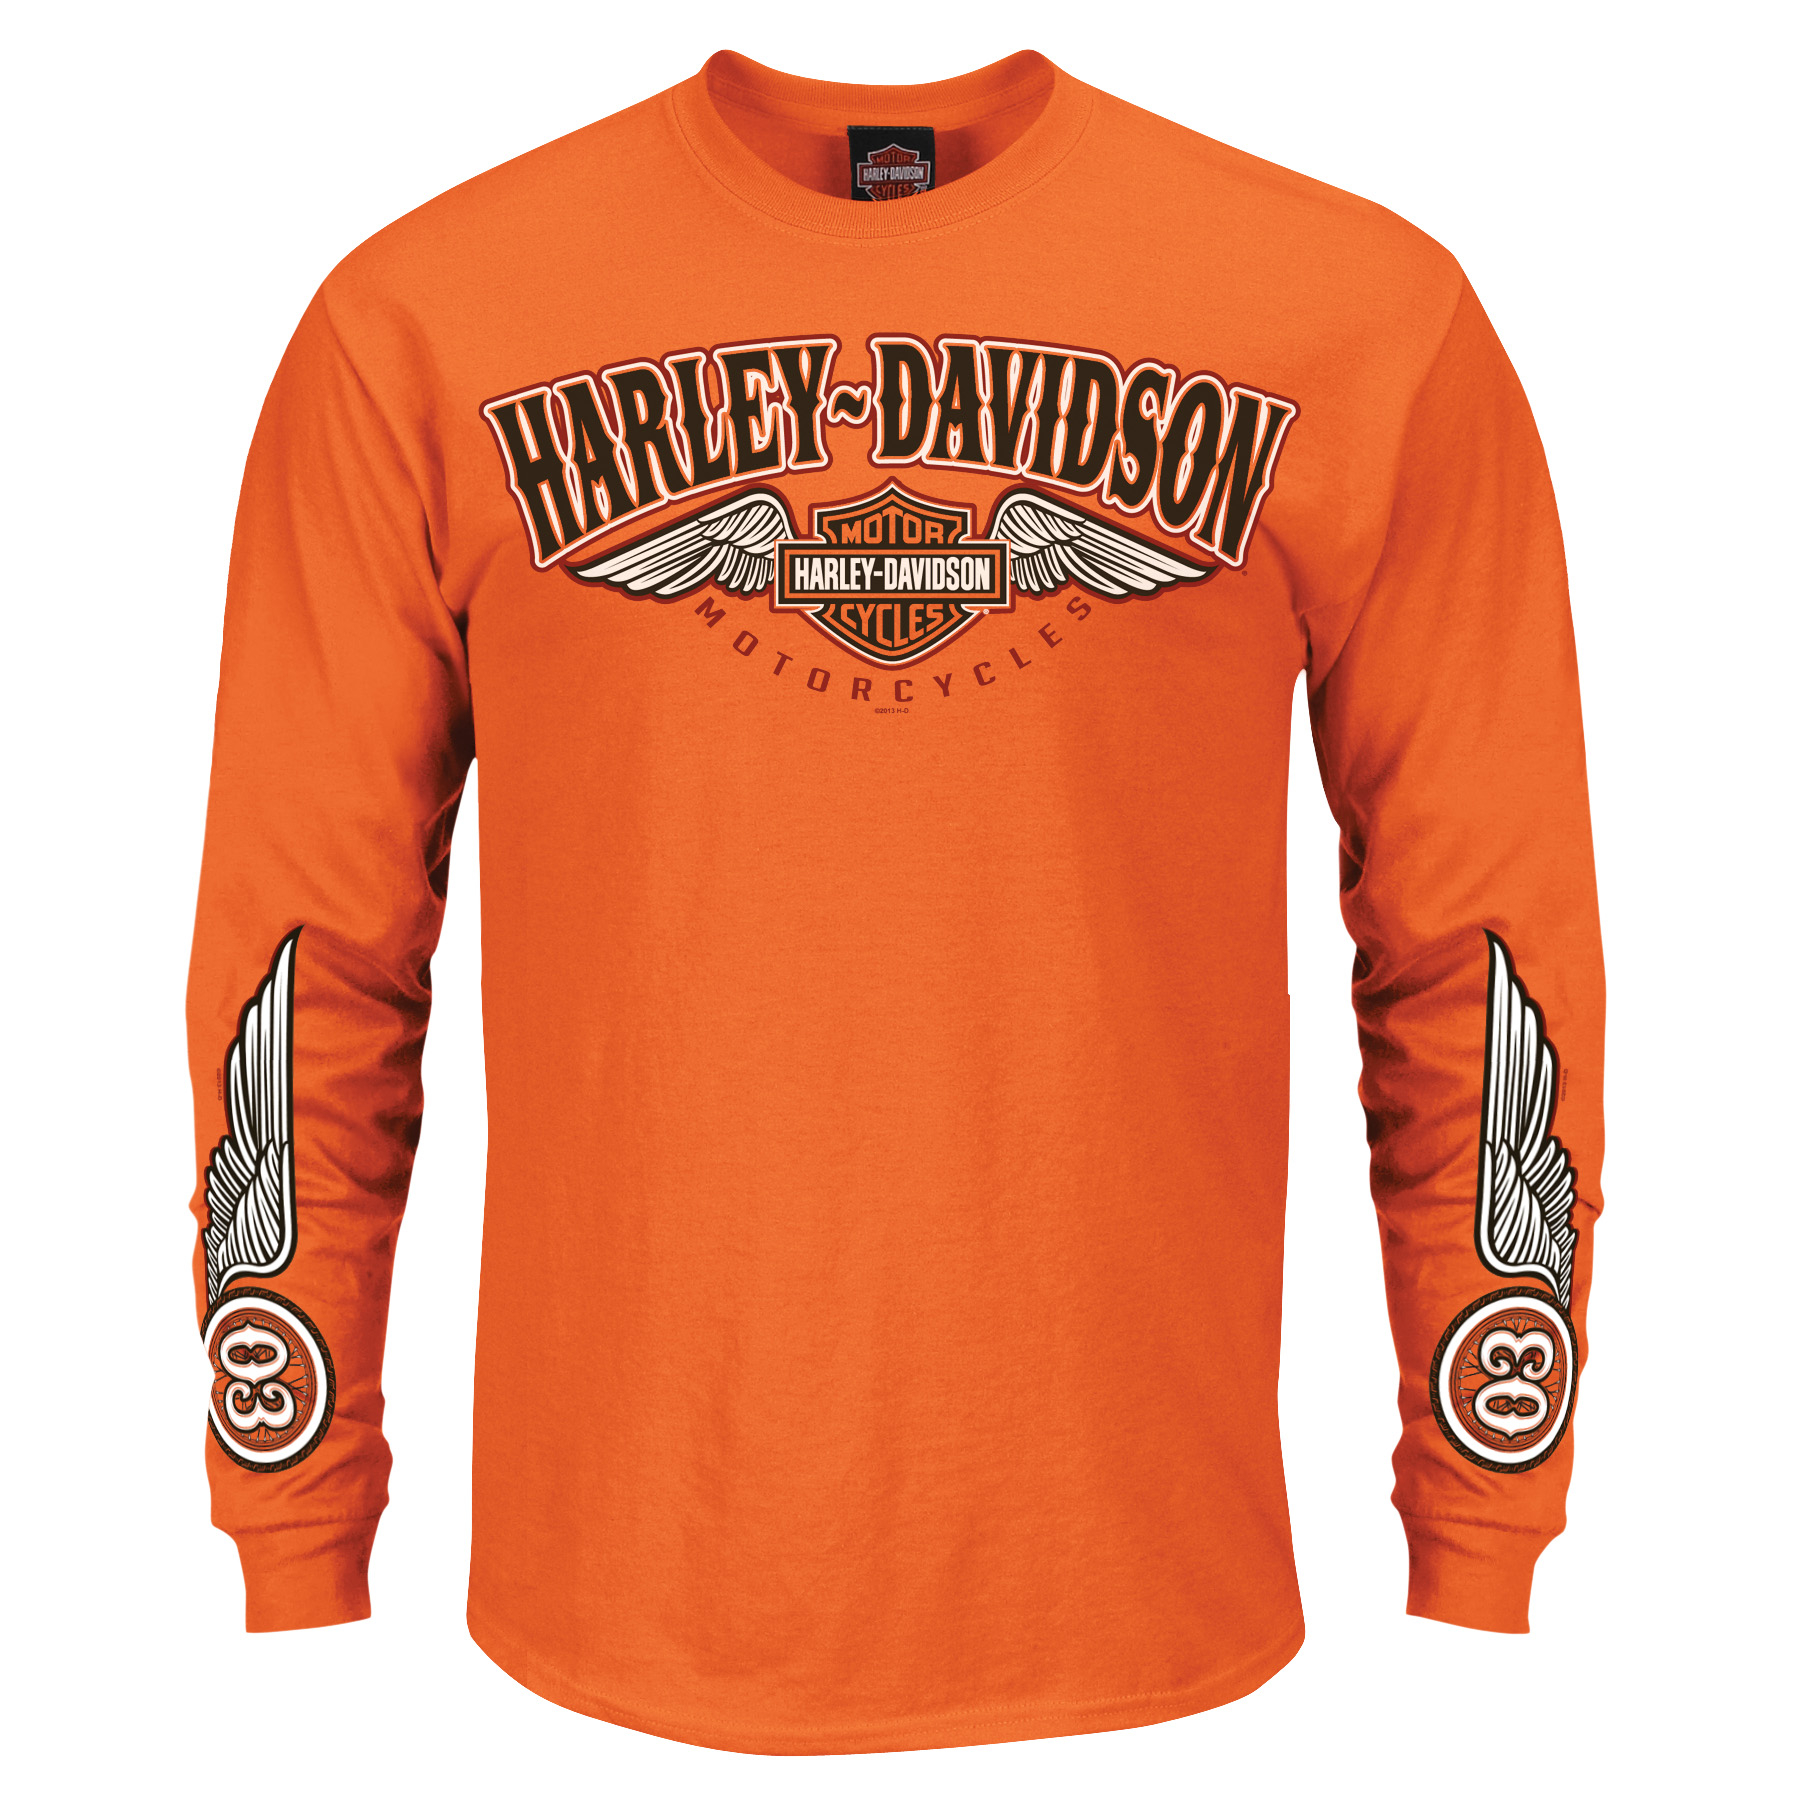 Harley Davidson Clothing Outlet Online